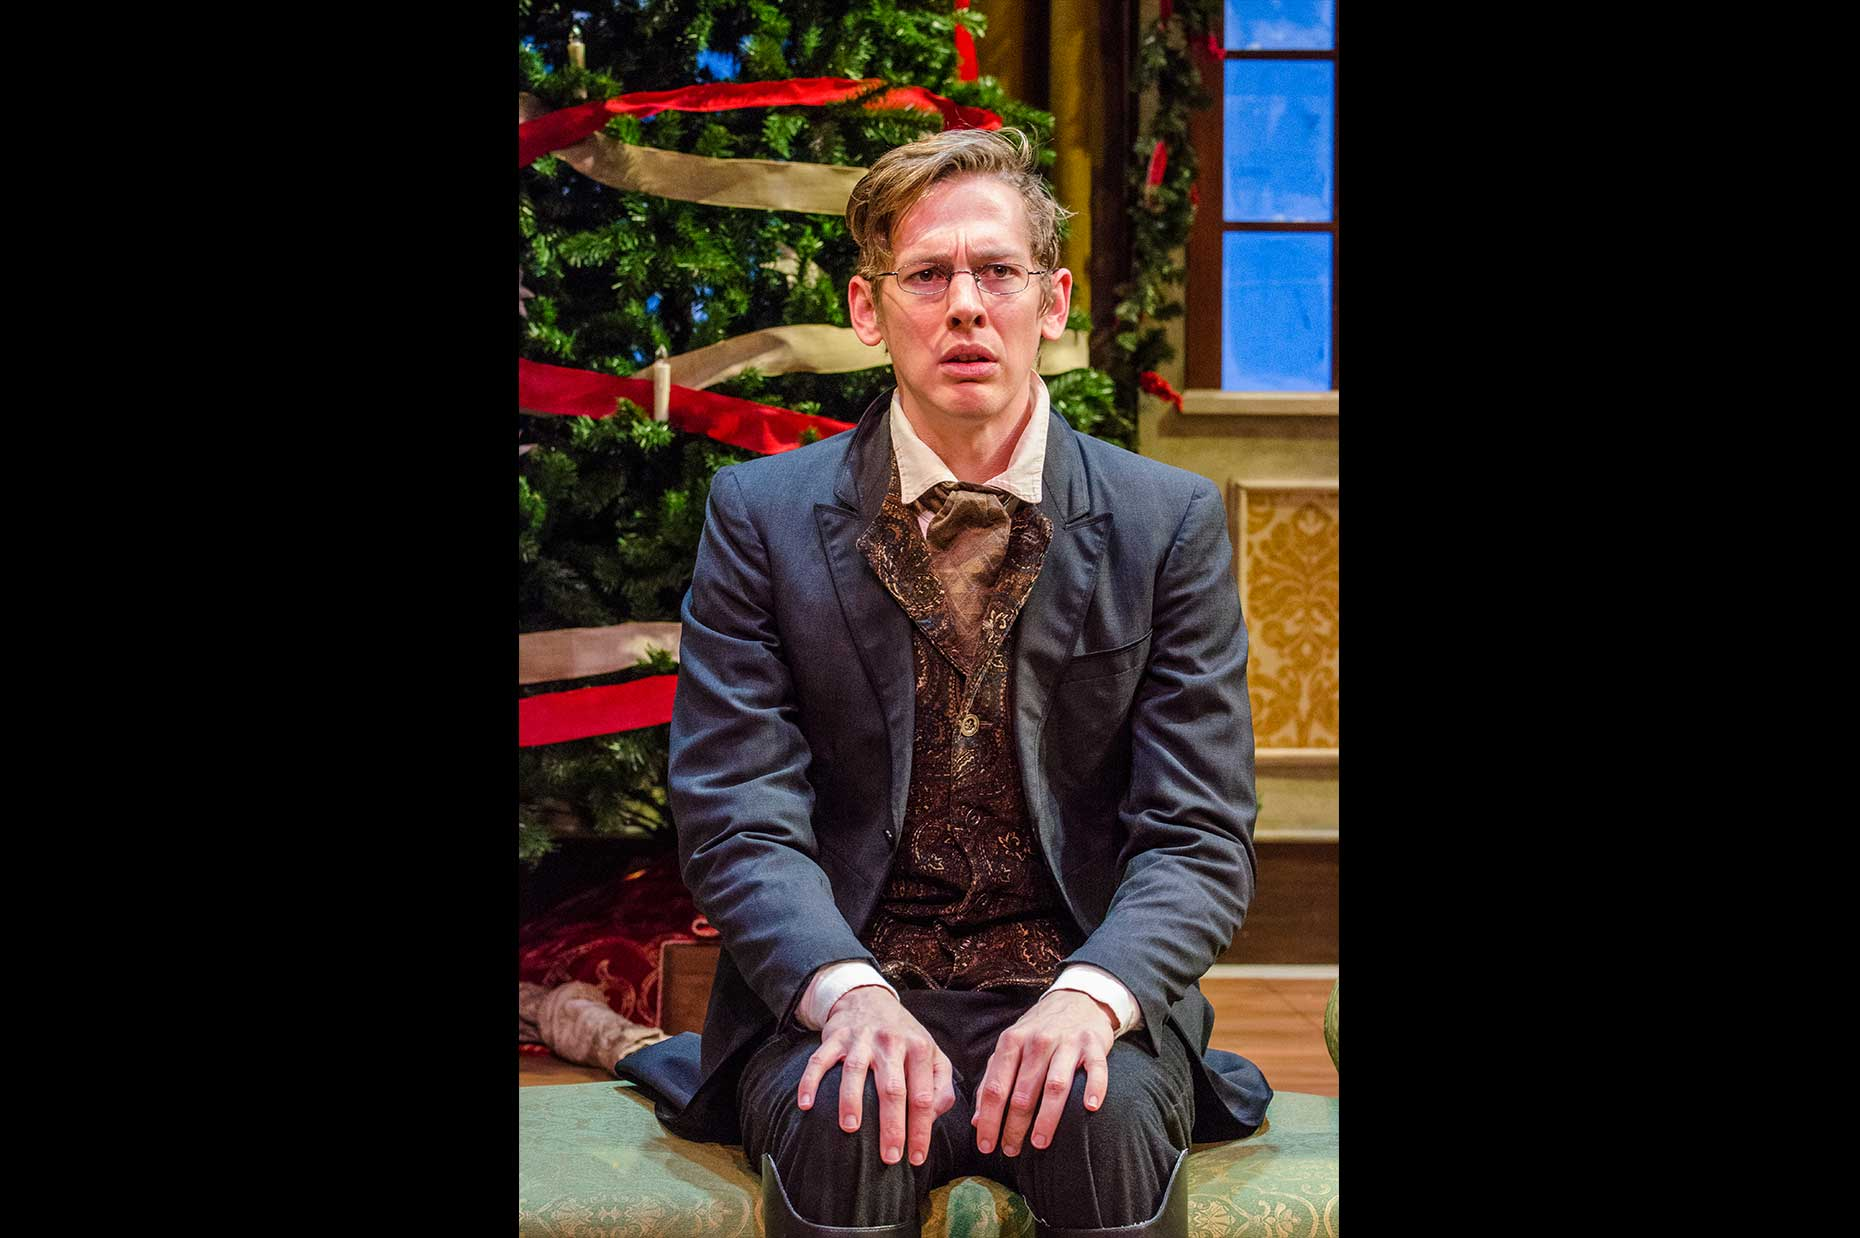 rick-barbour-director-miss-bennet-christmas-at-pemberley-boulder-ensemble-theatre-04